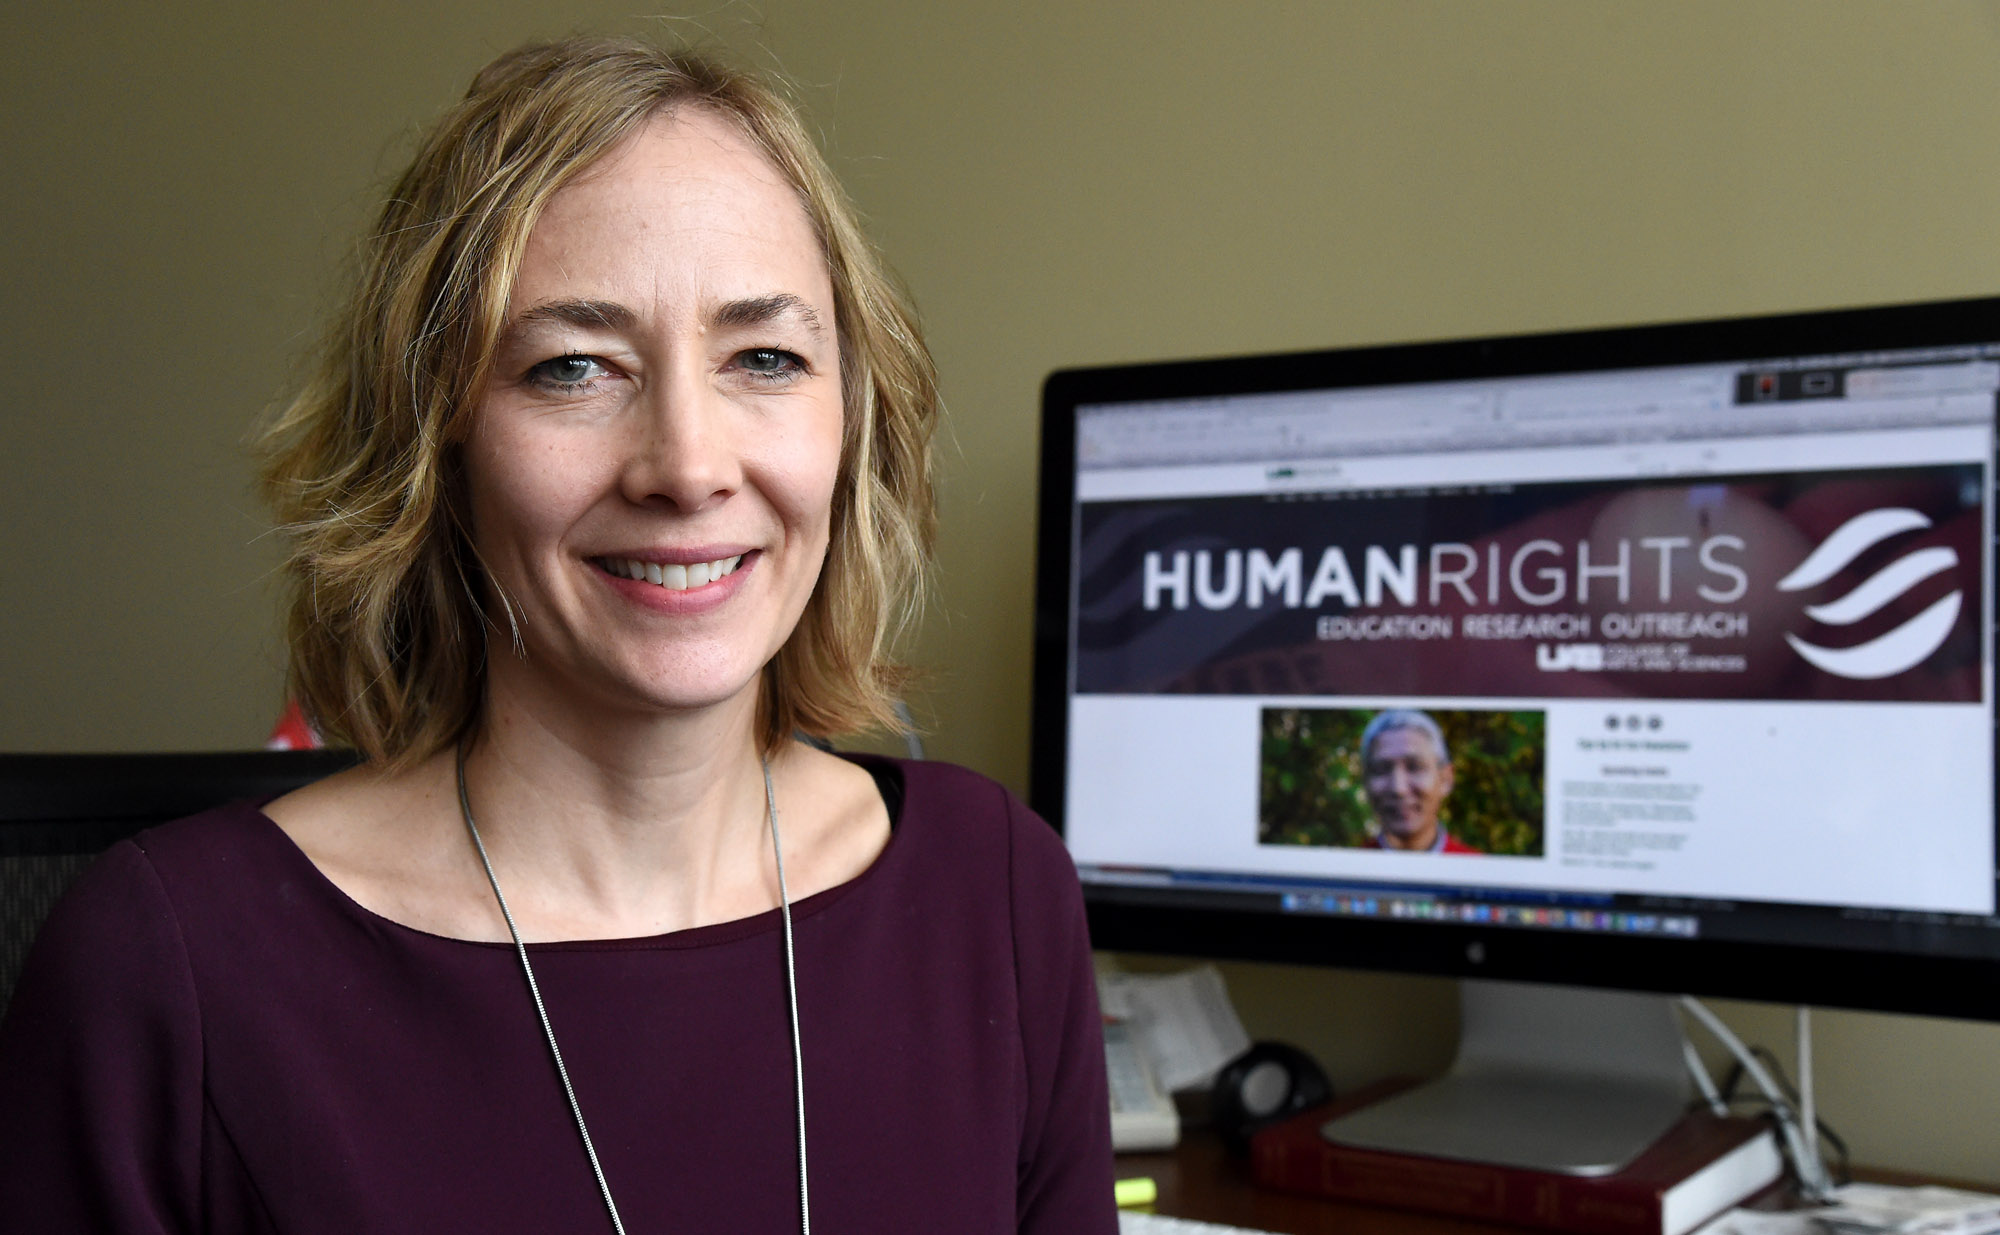 How Tina Reuter And Uab S Institute For Human Rights Build